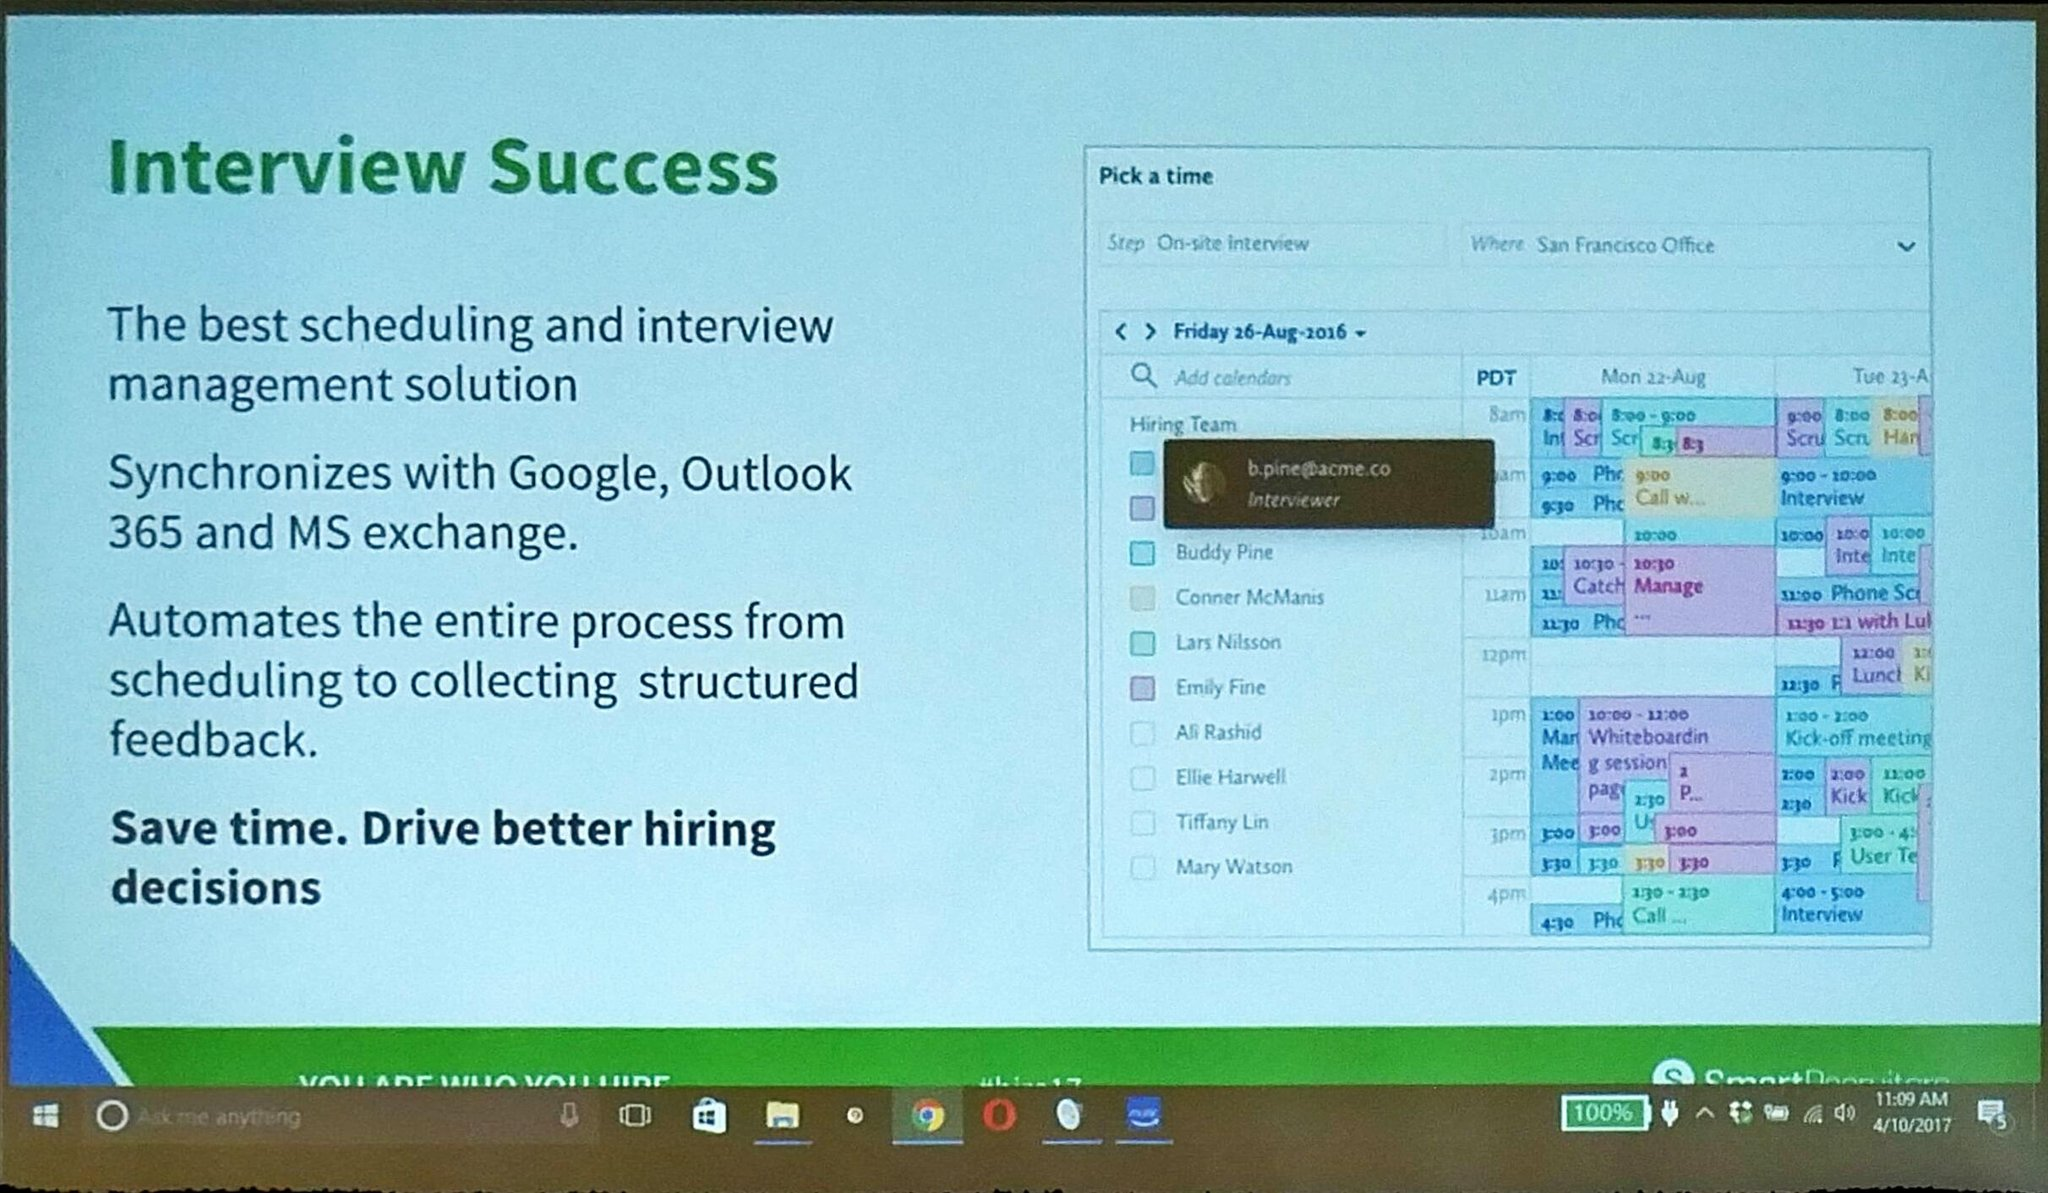 Key new @SmartRecruiters new capabilities -  Interview  Scheduling #hire17 https://t.co/DtUUVOIQF3